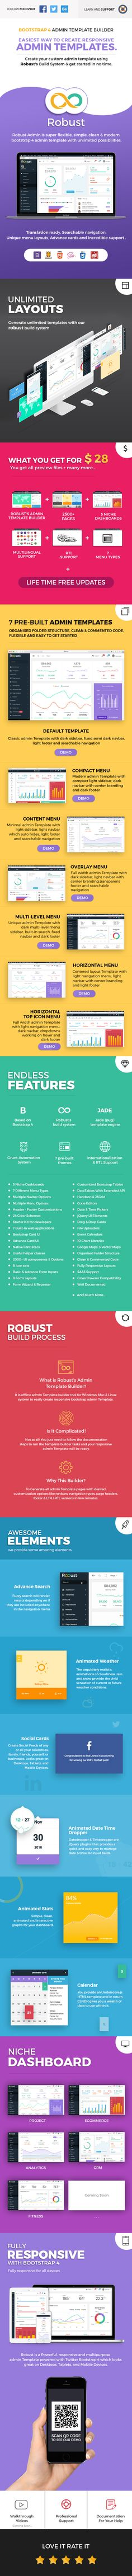 Robust admin is super flexible, powerful, clean & modern responsive bootstrap 4 admin template with unlimited possibilities. It includes 7 pre-built templates with organized folder structure, clean & commented code, 2500+ pages, 1000+ components, 500+ charts, 100+ advance cards (widgets), 100+ plugins – extensions and many more. Robust admin provides internationalization, RTL support, searchable navigation, unique menu layouts, advance cards and incredible support.